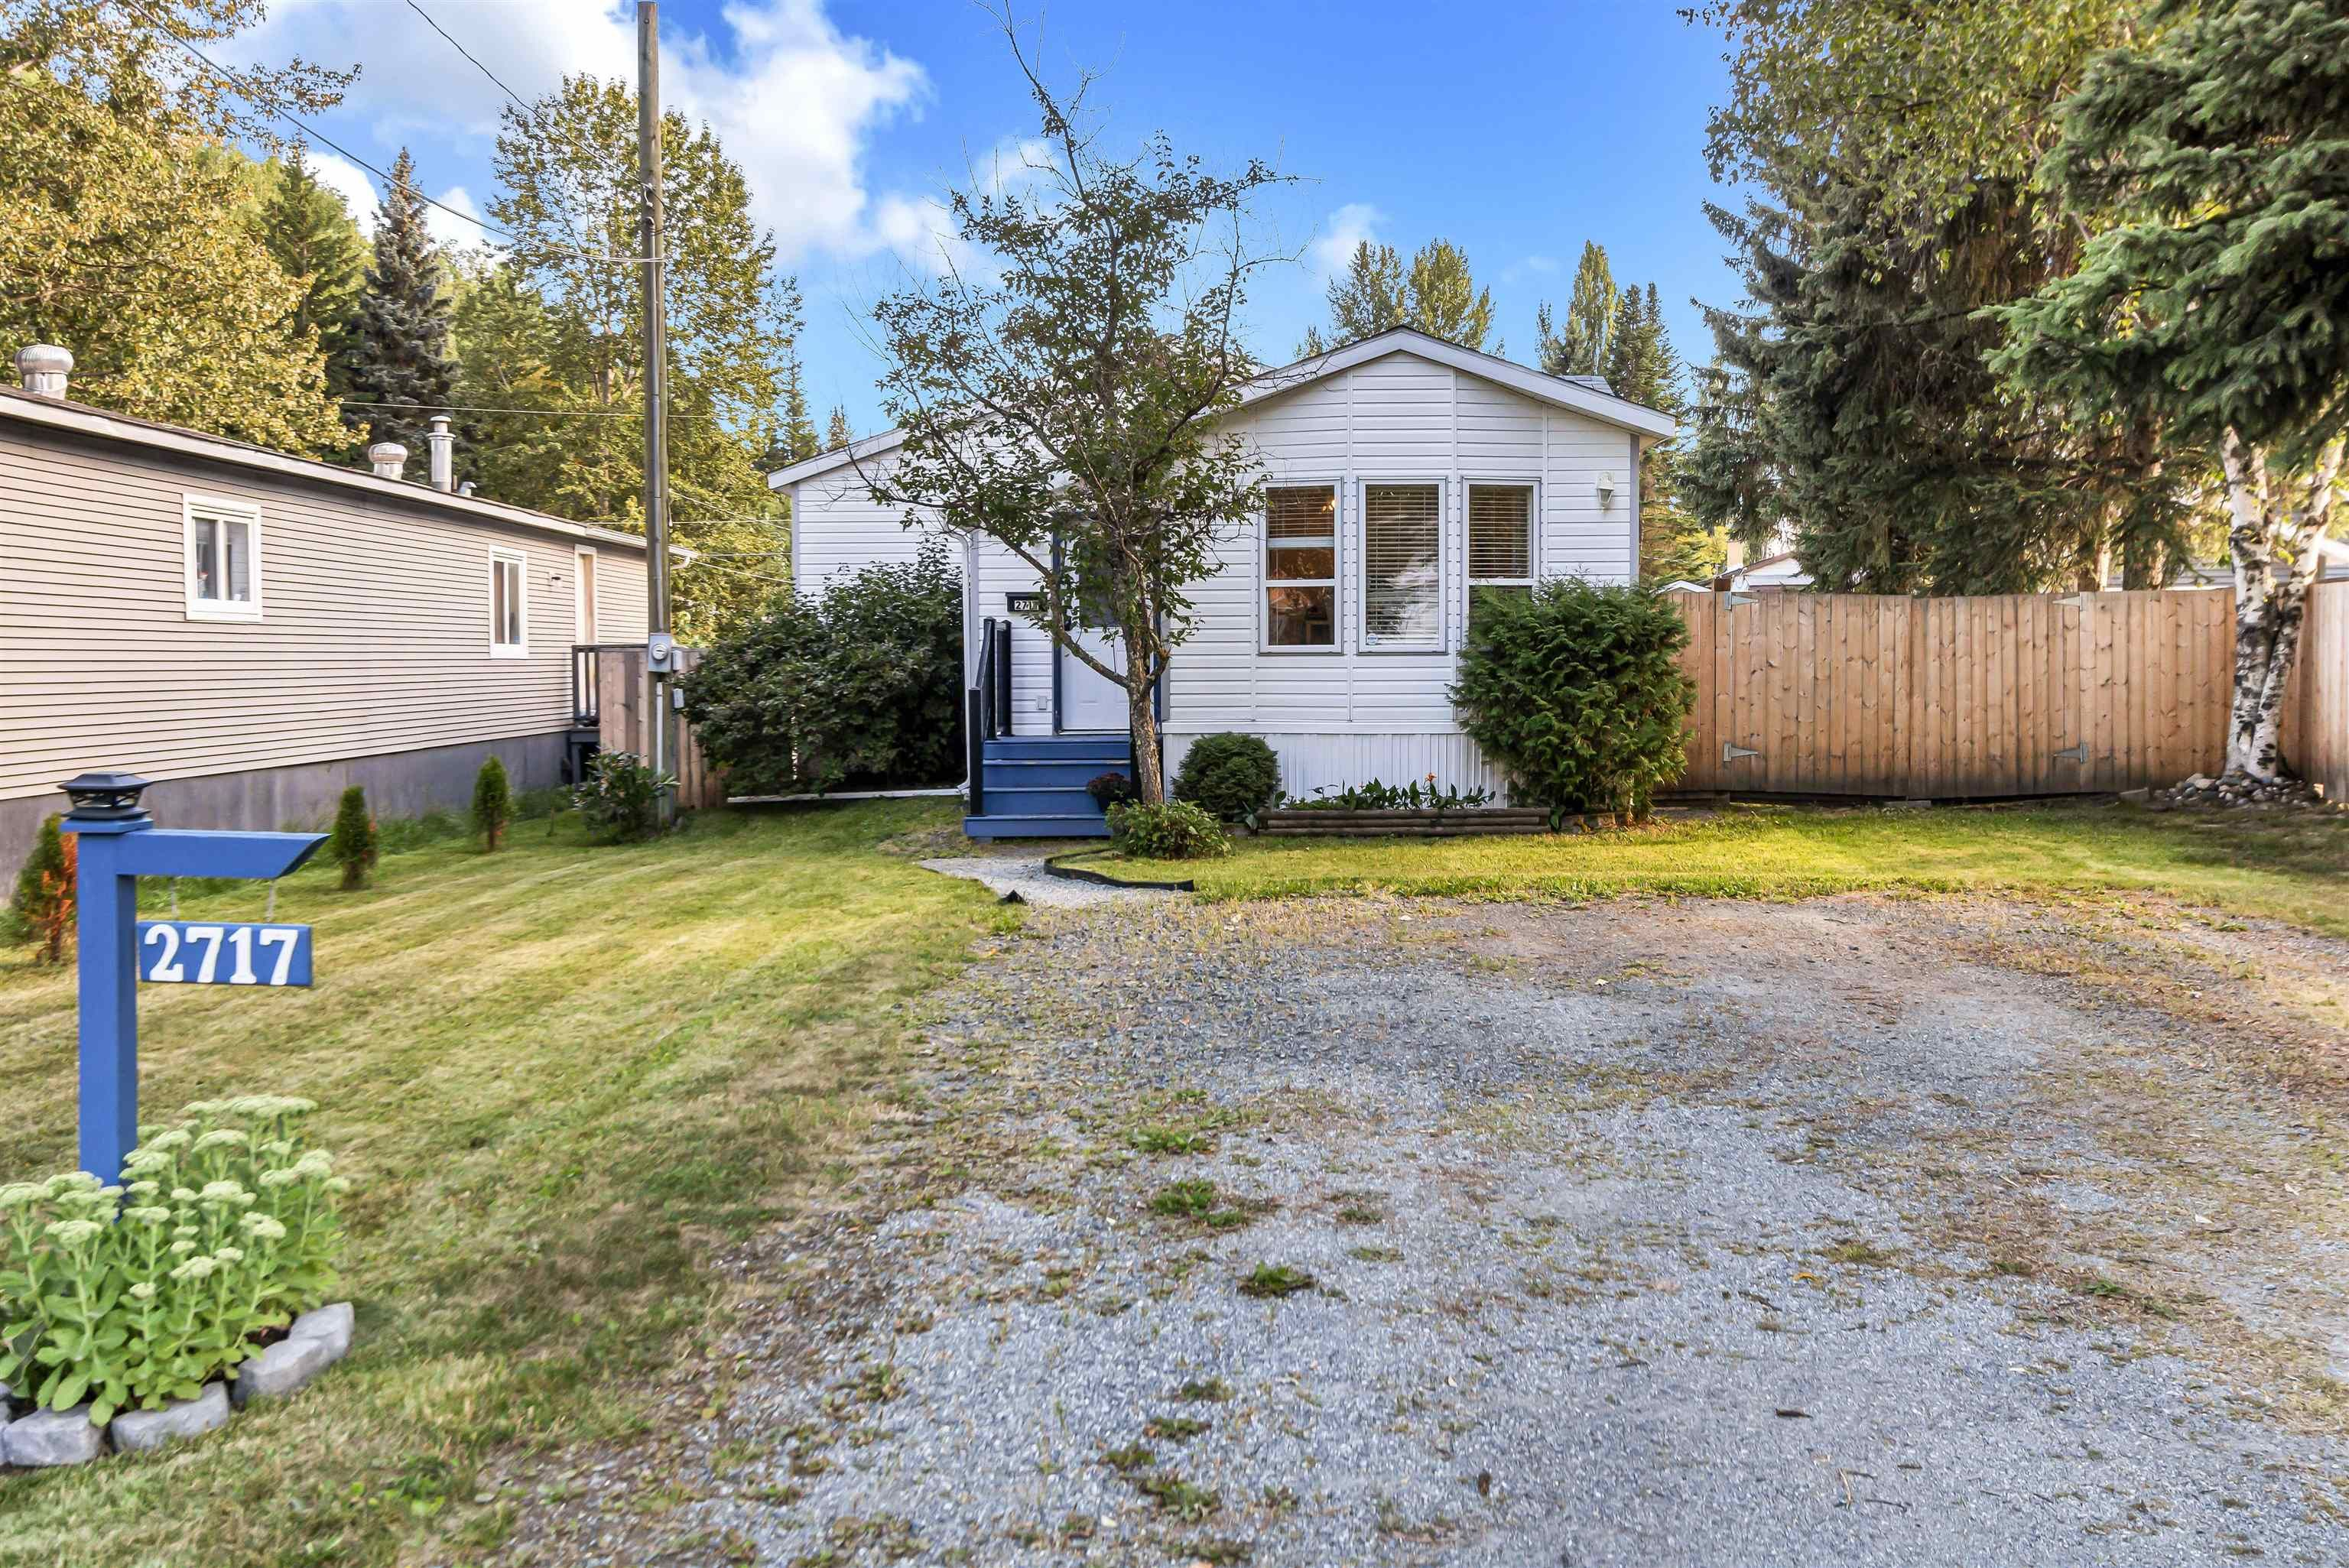 Main Photo: 2717 MINOTTI Drive in Prince George: Hart Highway Manufactured Home for sale (PG City North (Zone 73))  : MLS®# R2612148